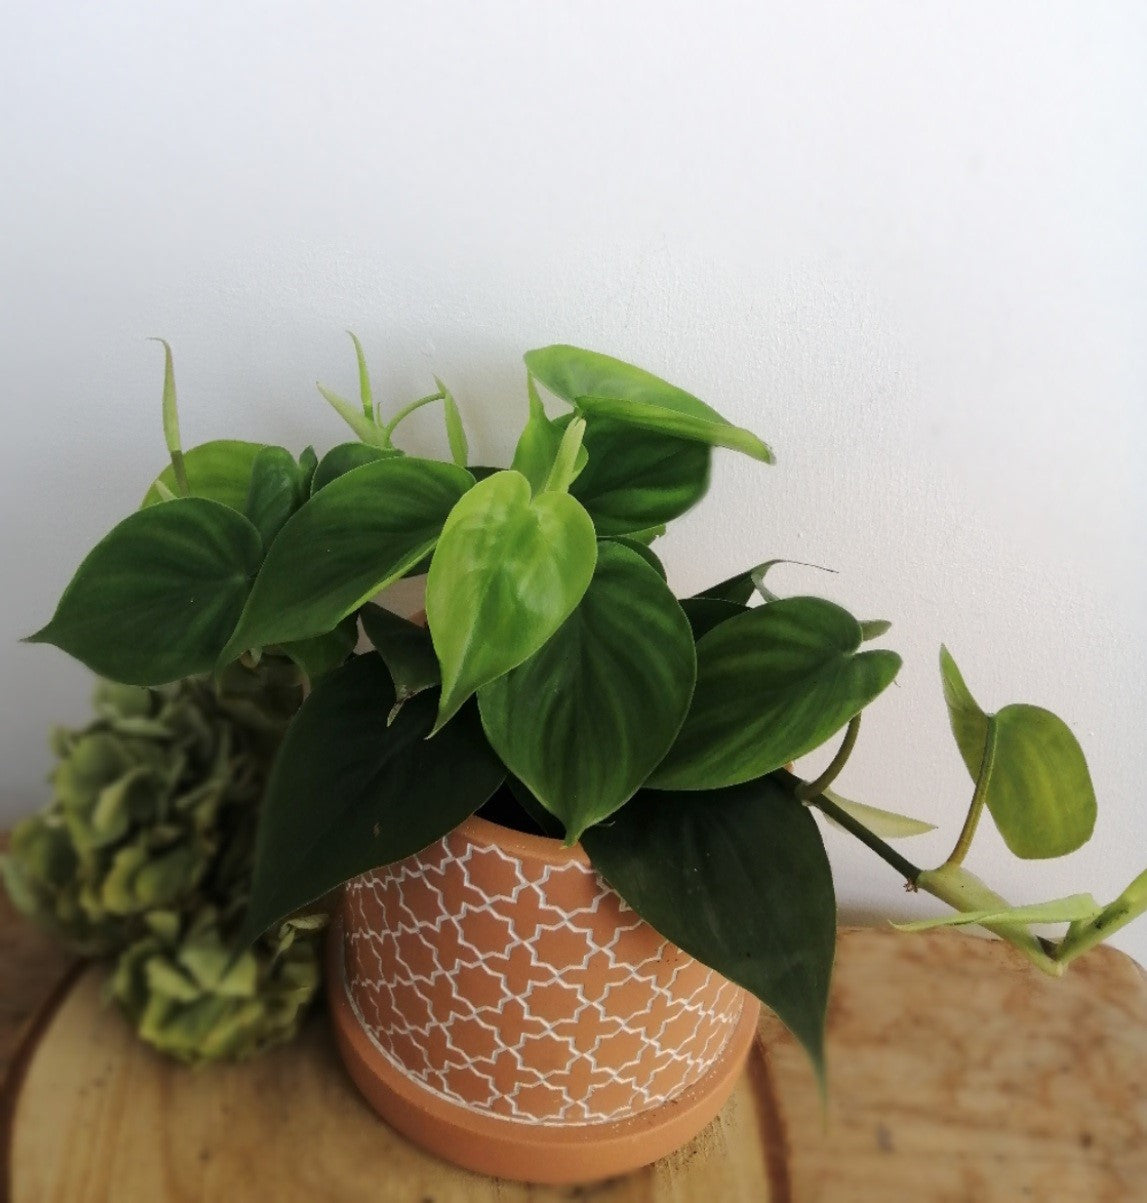 Philodendron Scandens 'Sweetheart vine'